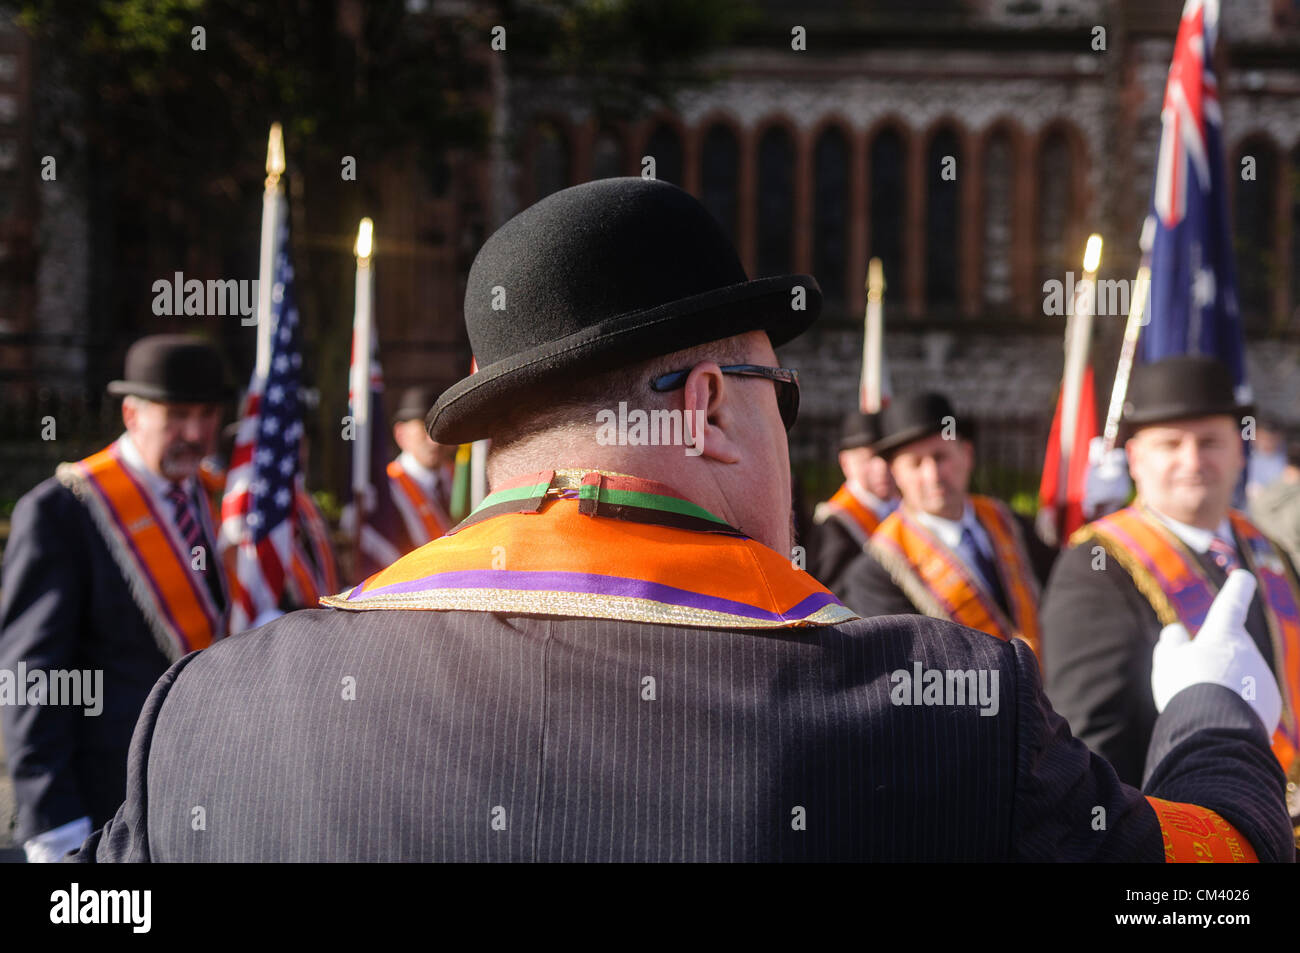 Orange Order official gives directions to fellow Orangemen during a briefing at the start of a parade - Stock Image